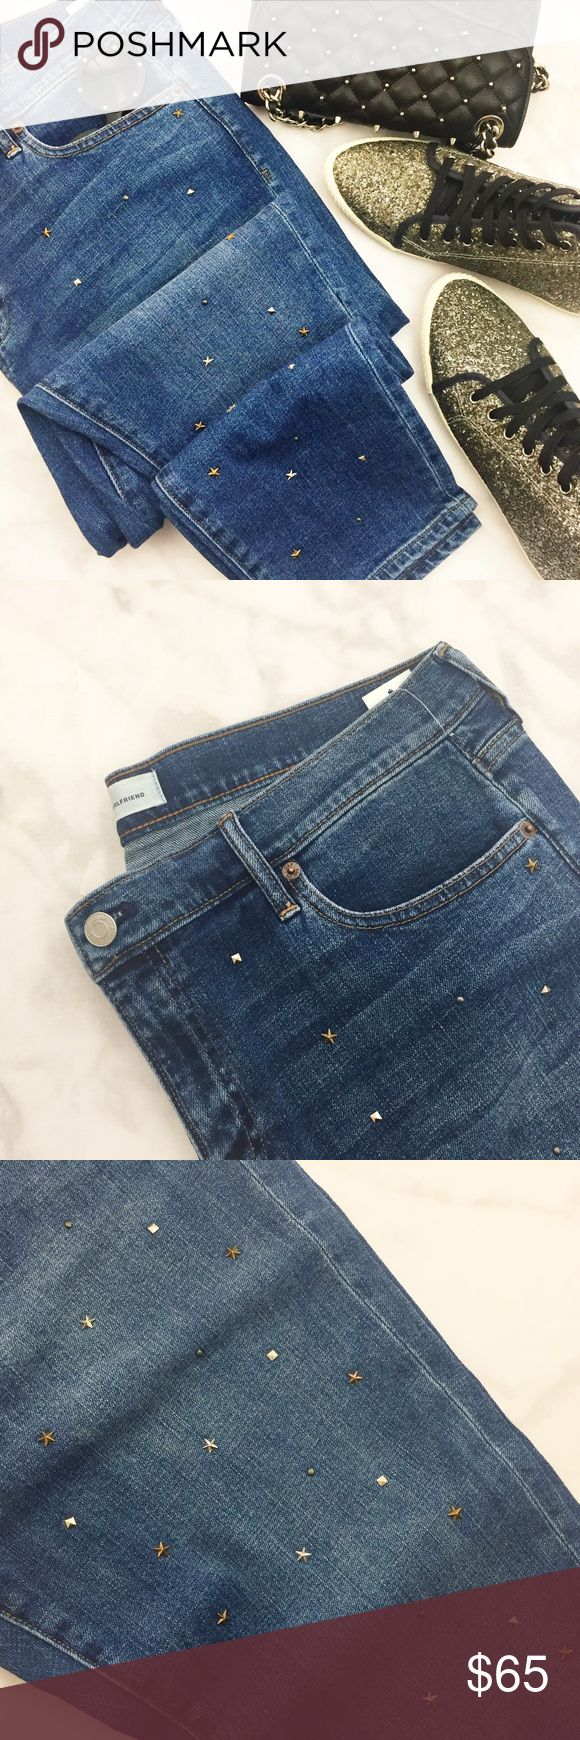 """Star Studded Jeans Details: * Size 32 * """"Best Girlfriend"""" style * Star and pyramid studs on front (plain back) * NWT 01061703 GAP Jeans Boyfriend"""